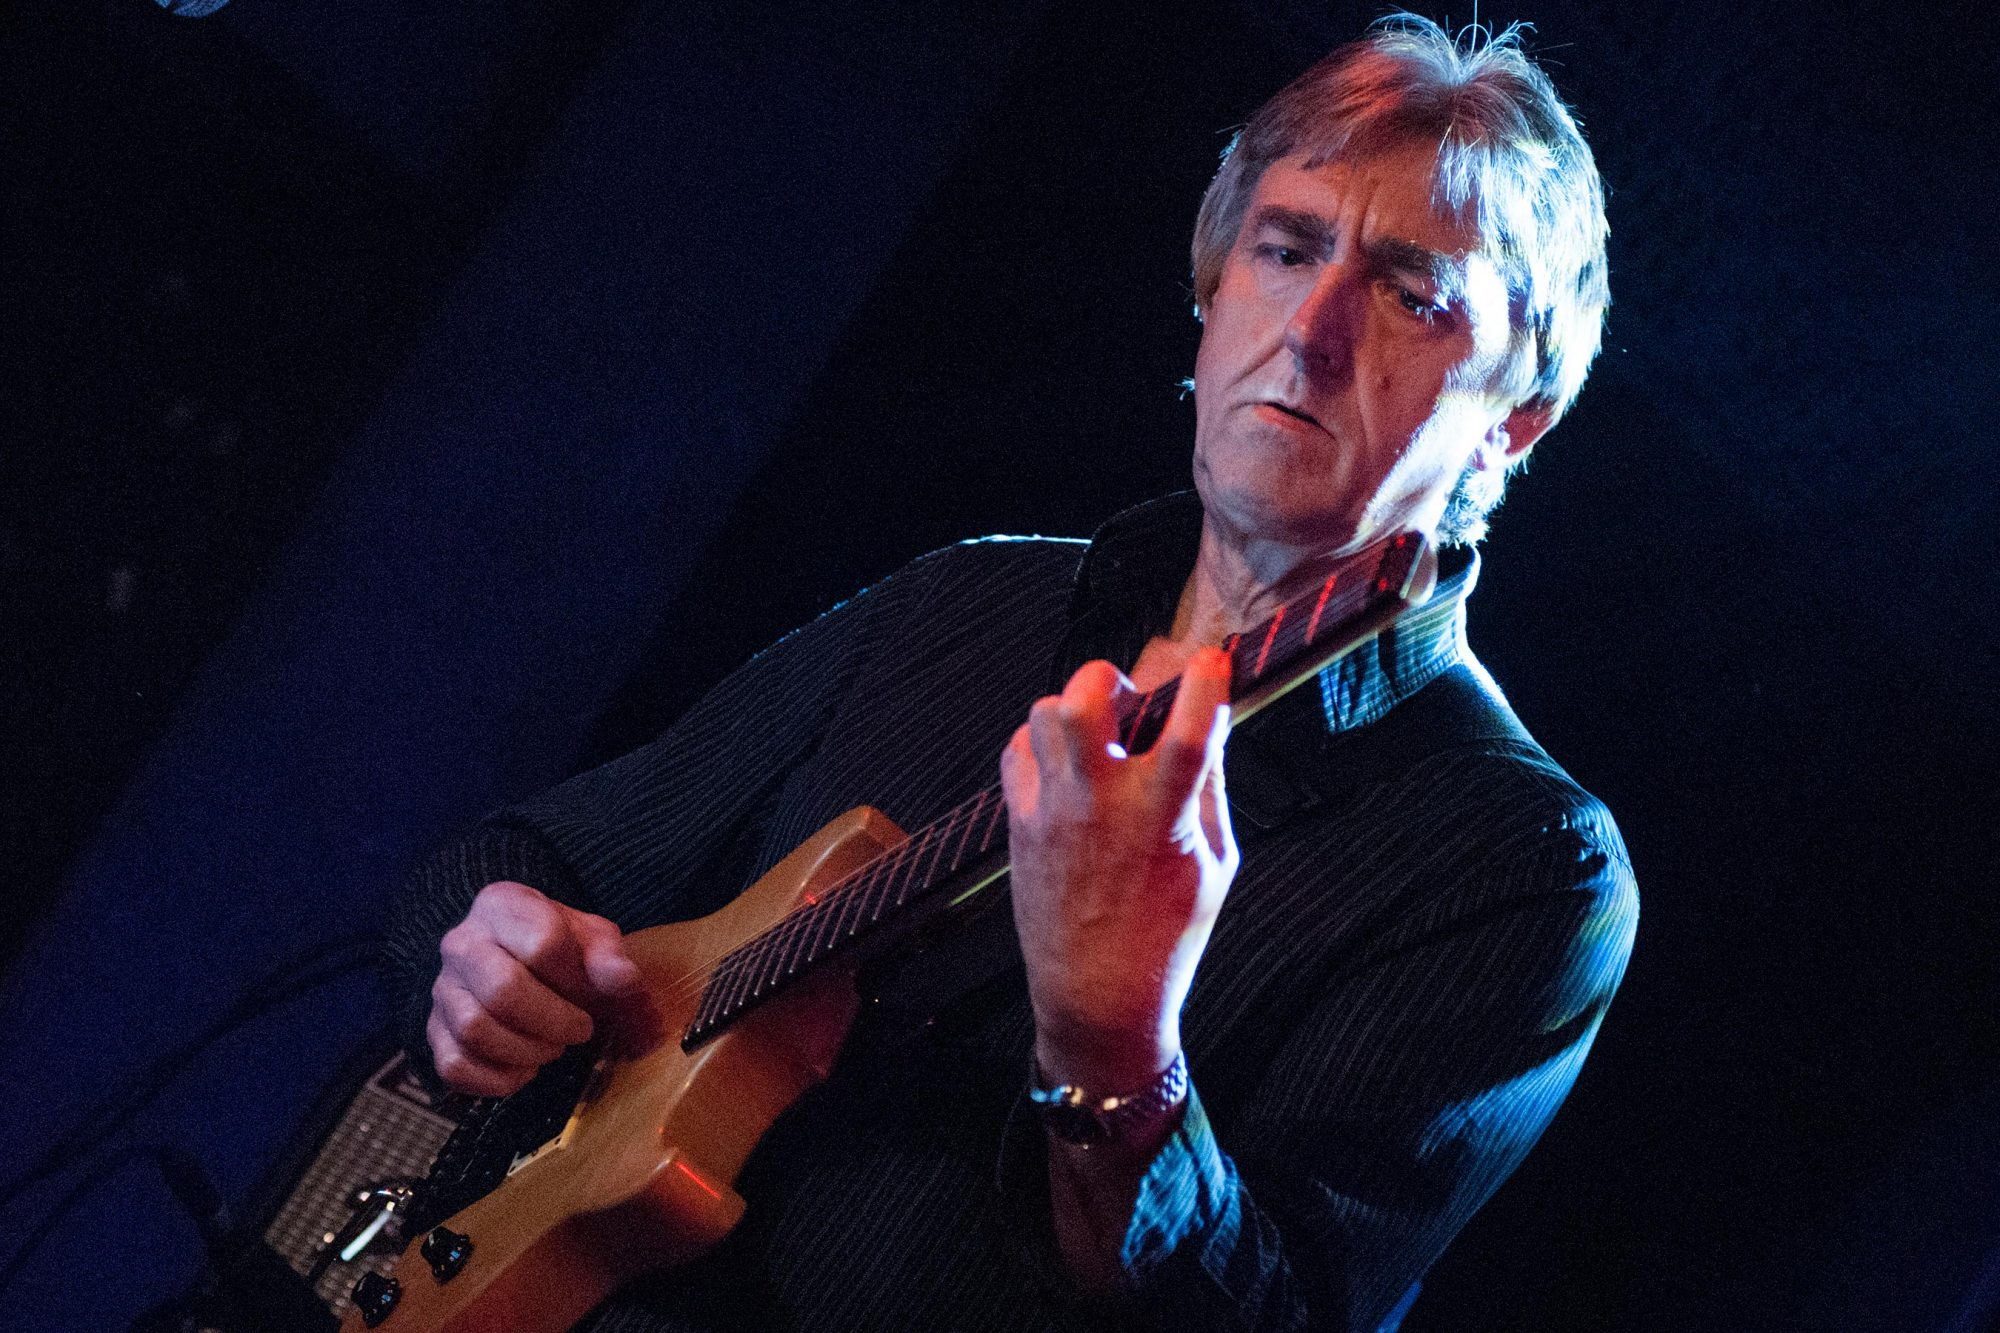 Allan Holdsworth Performs In Barcelona